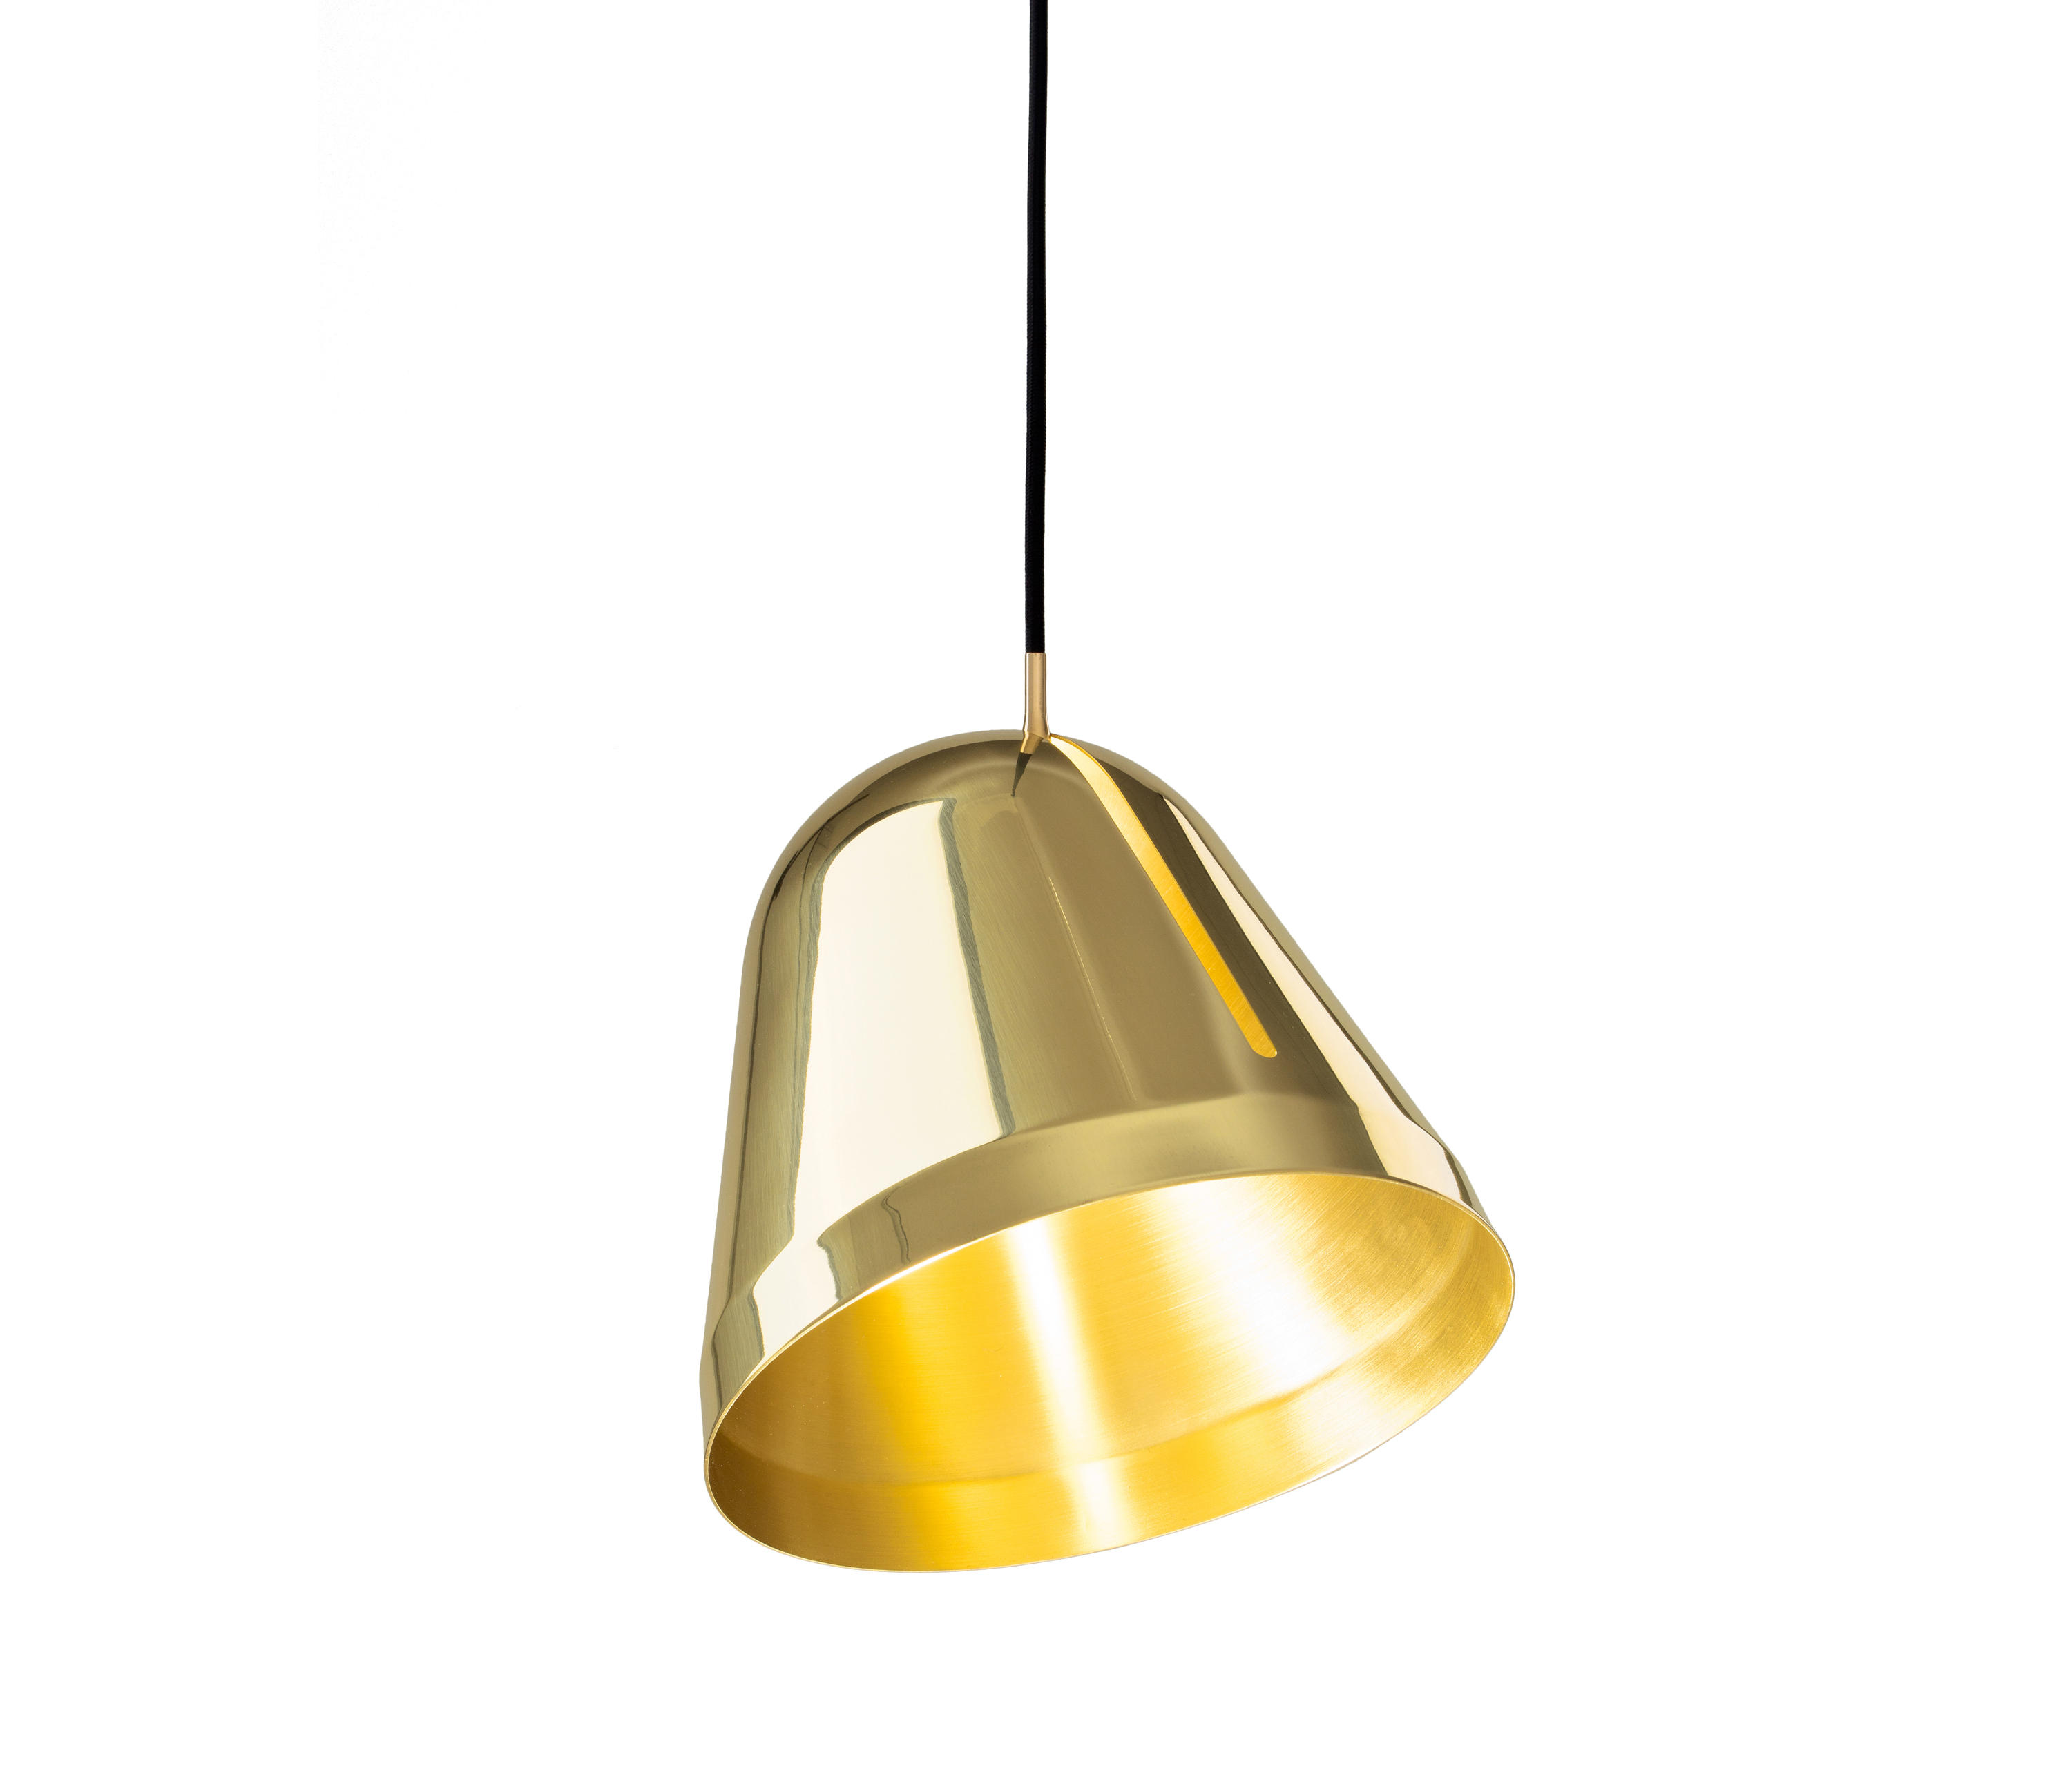 art double at arm pendant nouveau sale for lamp brass pamono